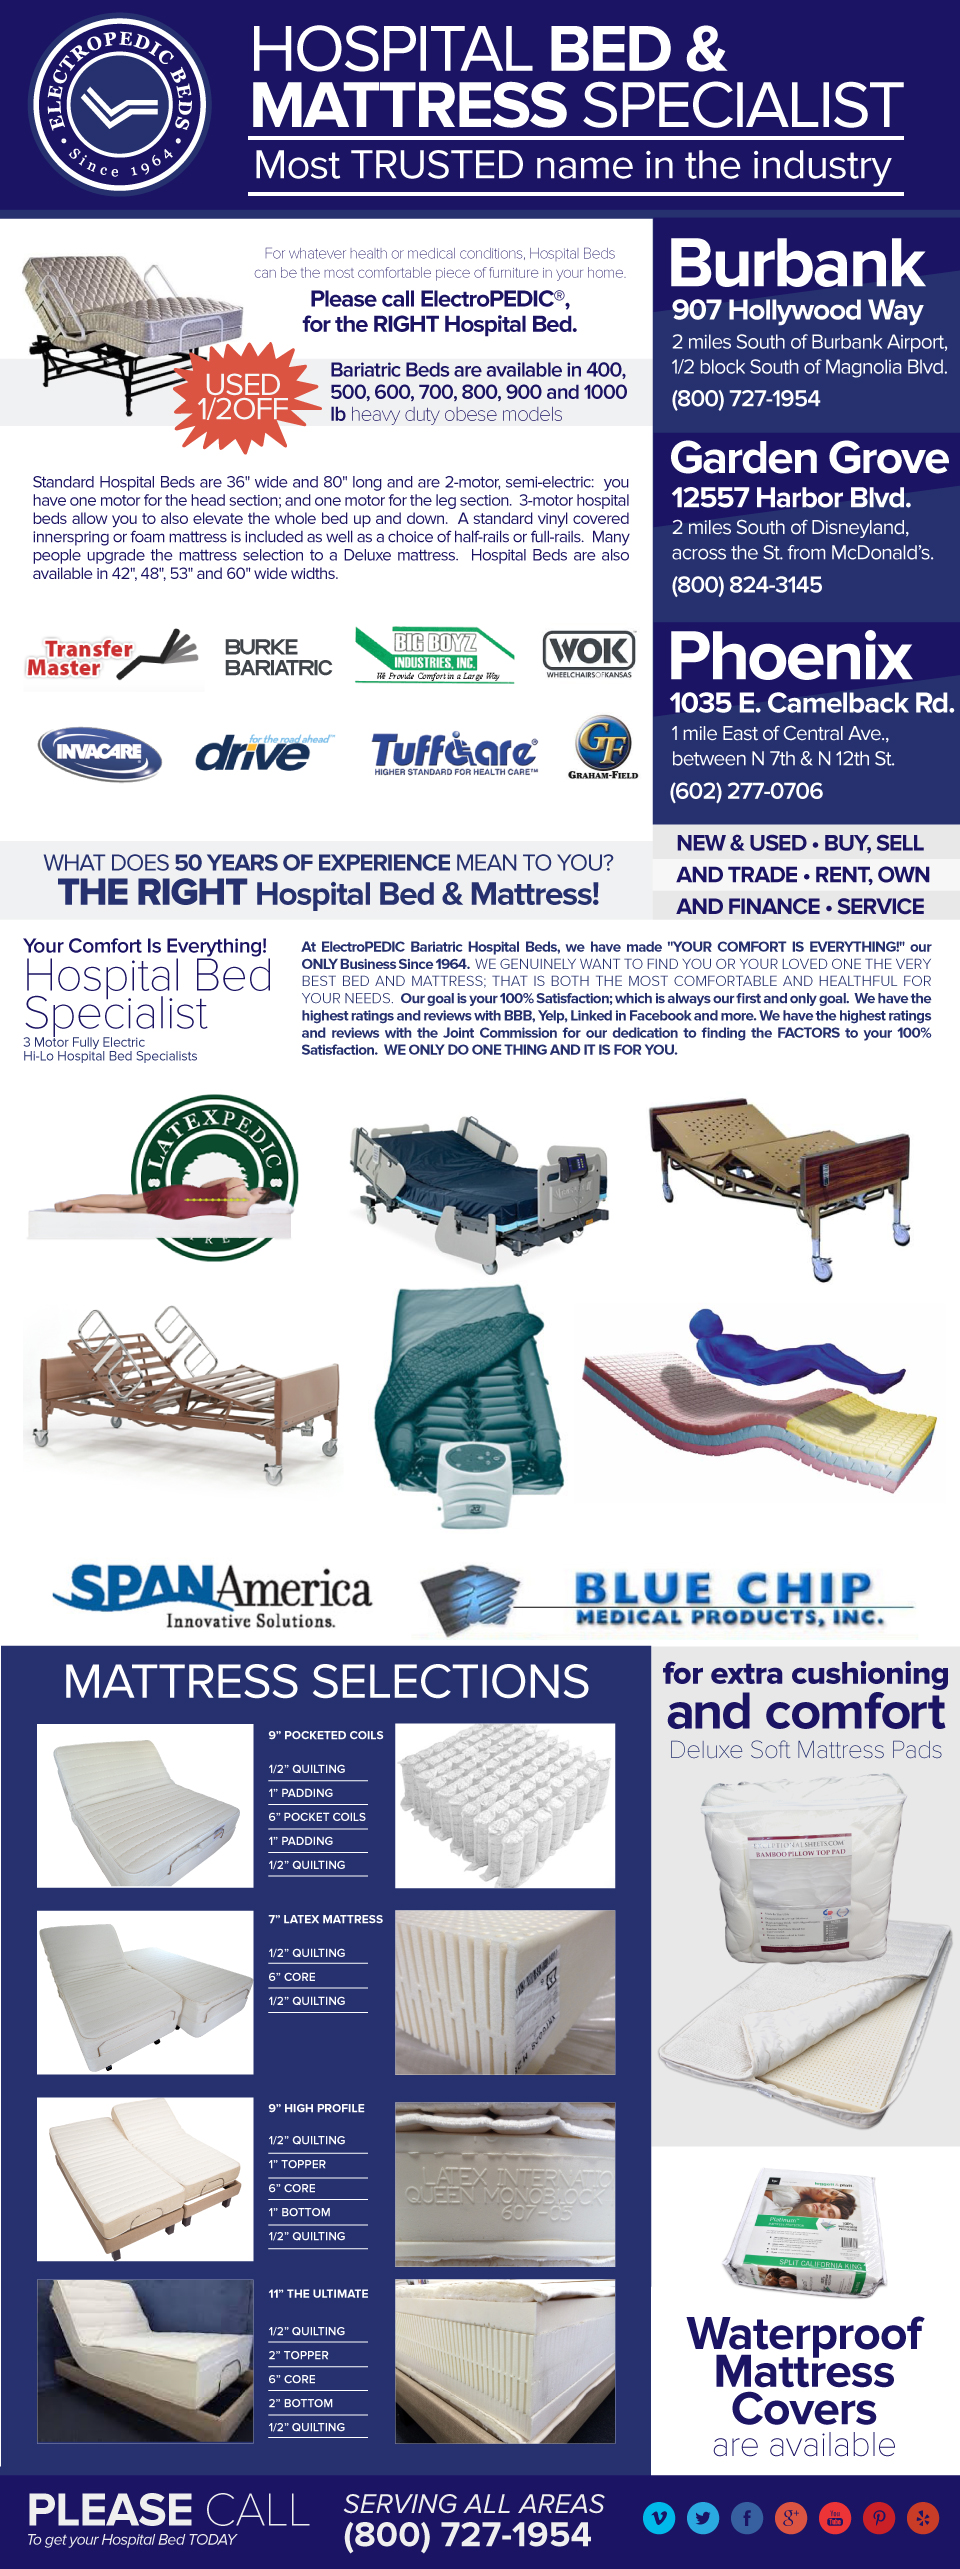 electric lift chairs for the elderly industrial lounge chair liftchairs rent adjustable beds hospital phoenix az renting mobility scooters ...